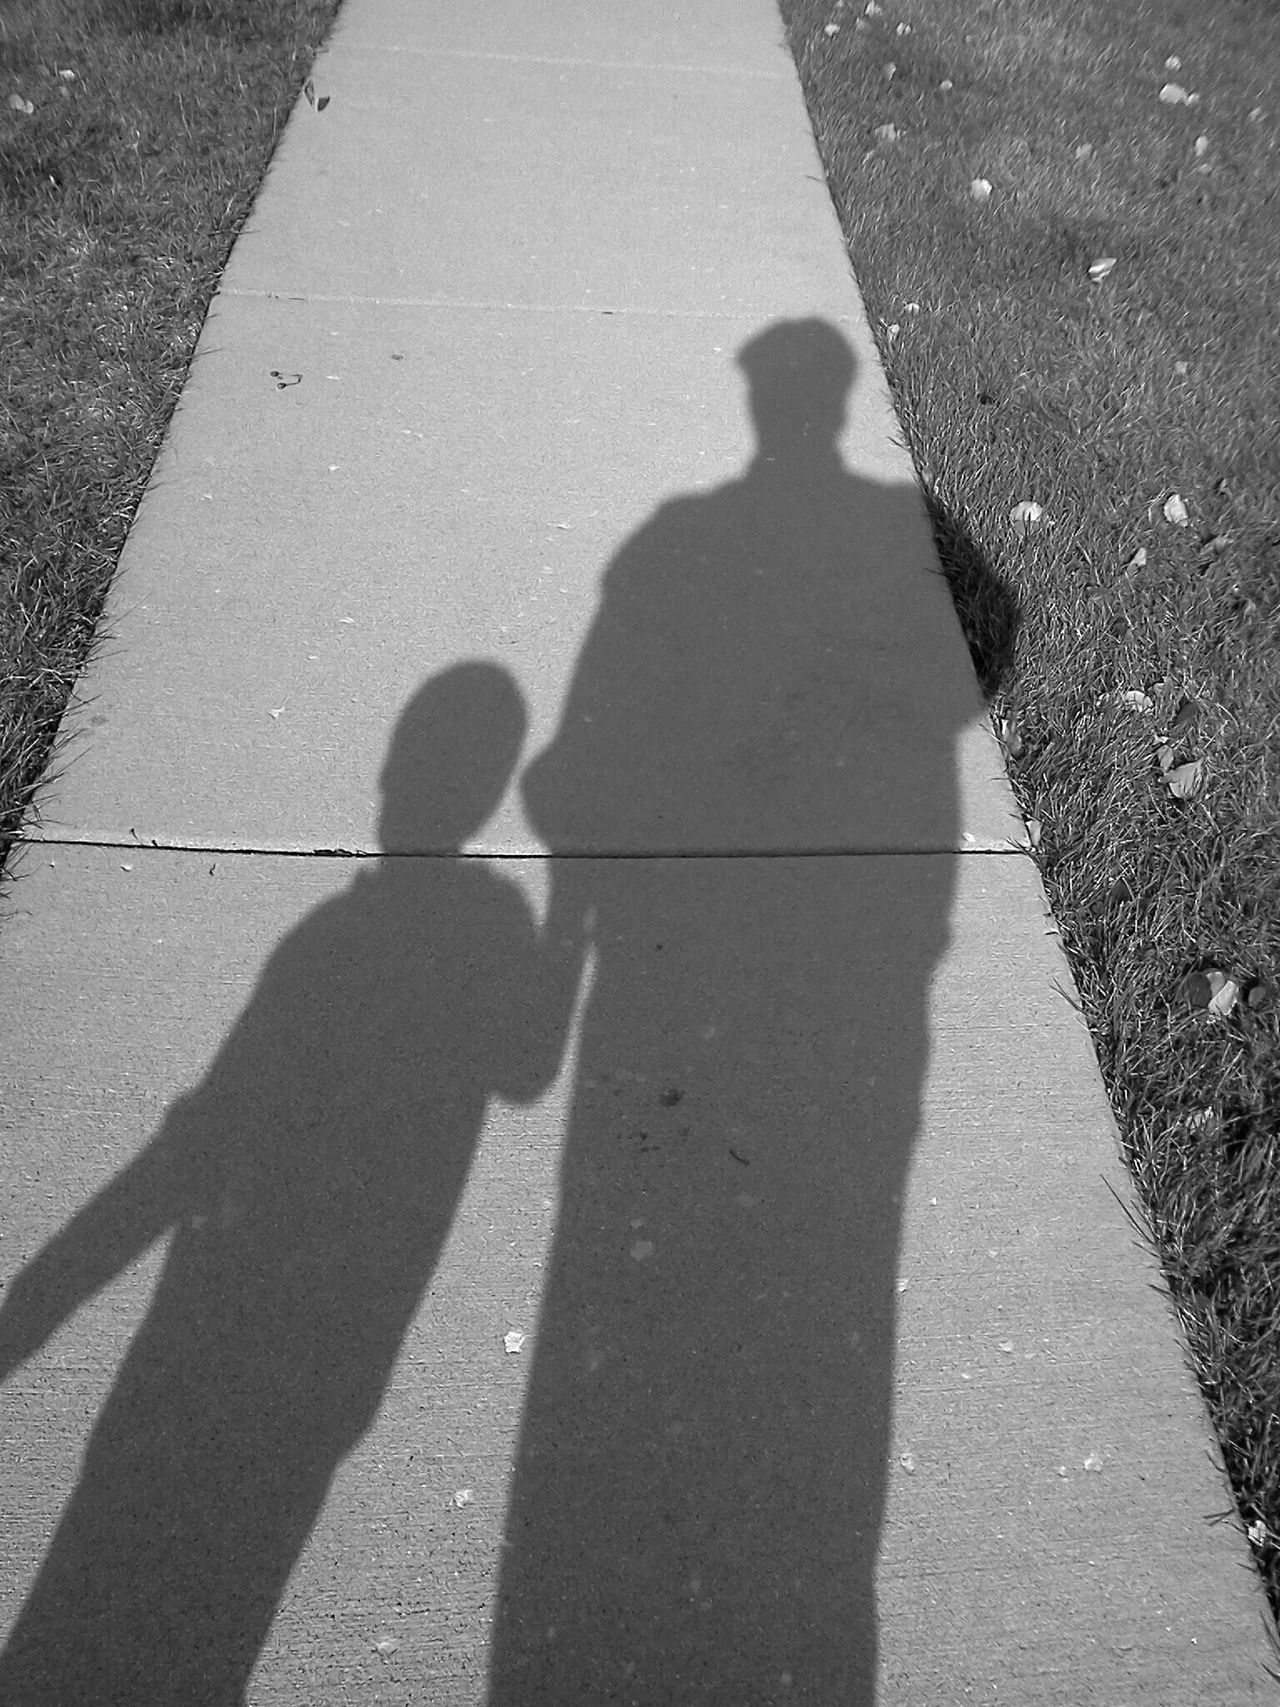 Father and son shadow Black & White Kids My Child Black And White Collection  Shadow Shadows Shadow Photography Childhood Memories Outdoors Summer Childhood Fatherhood  Fatherhood Moments Dad And Son Father And Son Father & Son Walking Hand In Hand Kids Portrait Editorial  Black And White Black&white Blackandwhite Blackandwhite Photography Sidewalk Sidewalk Photograhy